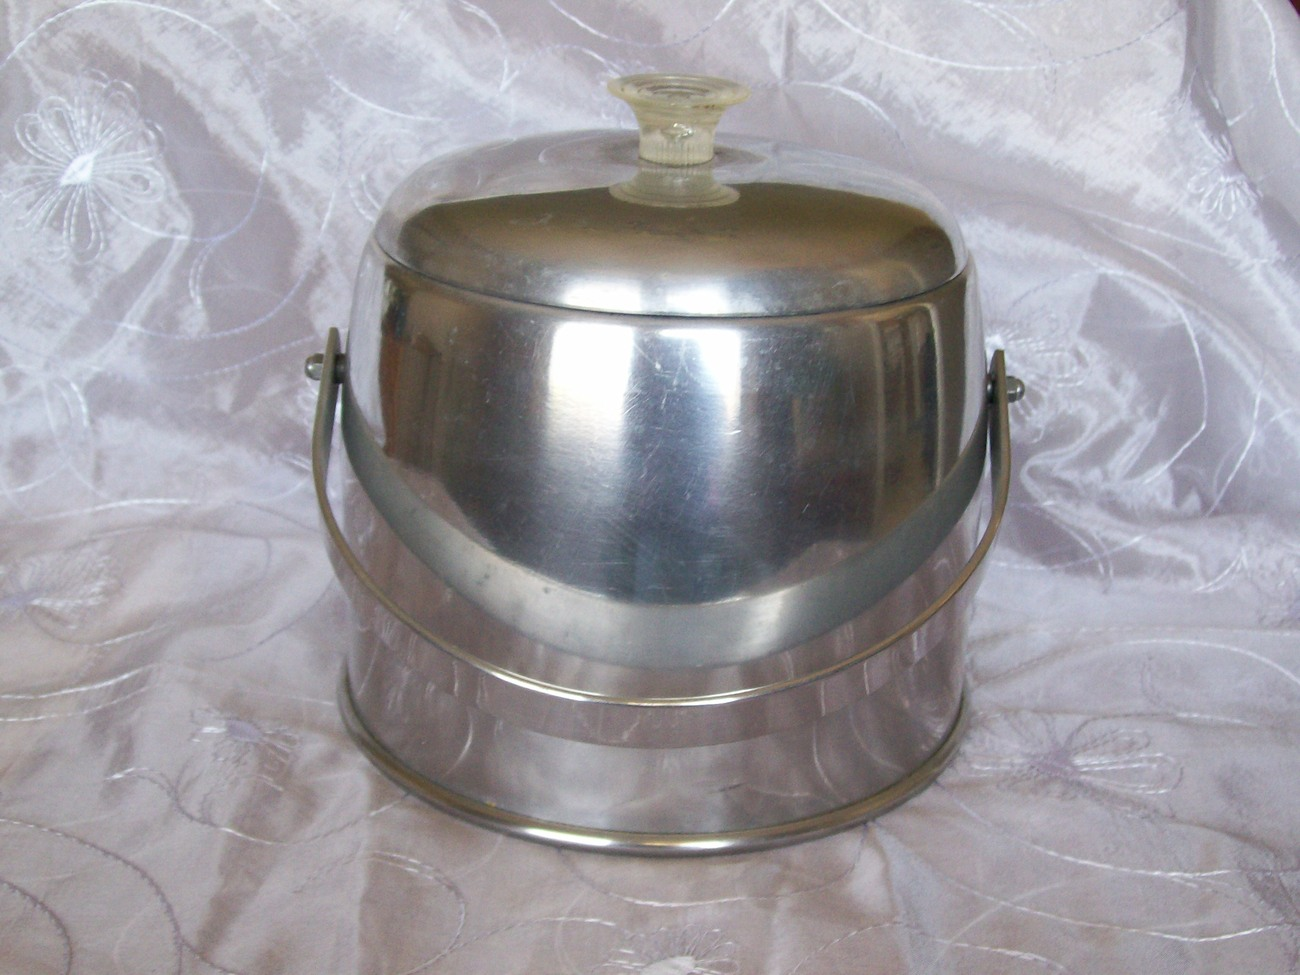 VINTAGE ICE BUCKET - Silver Plated Aluminum with Lucite Knob